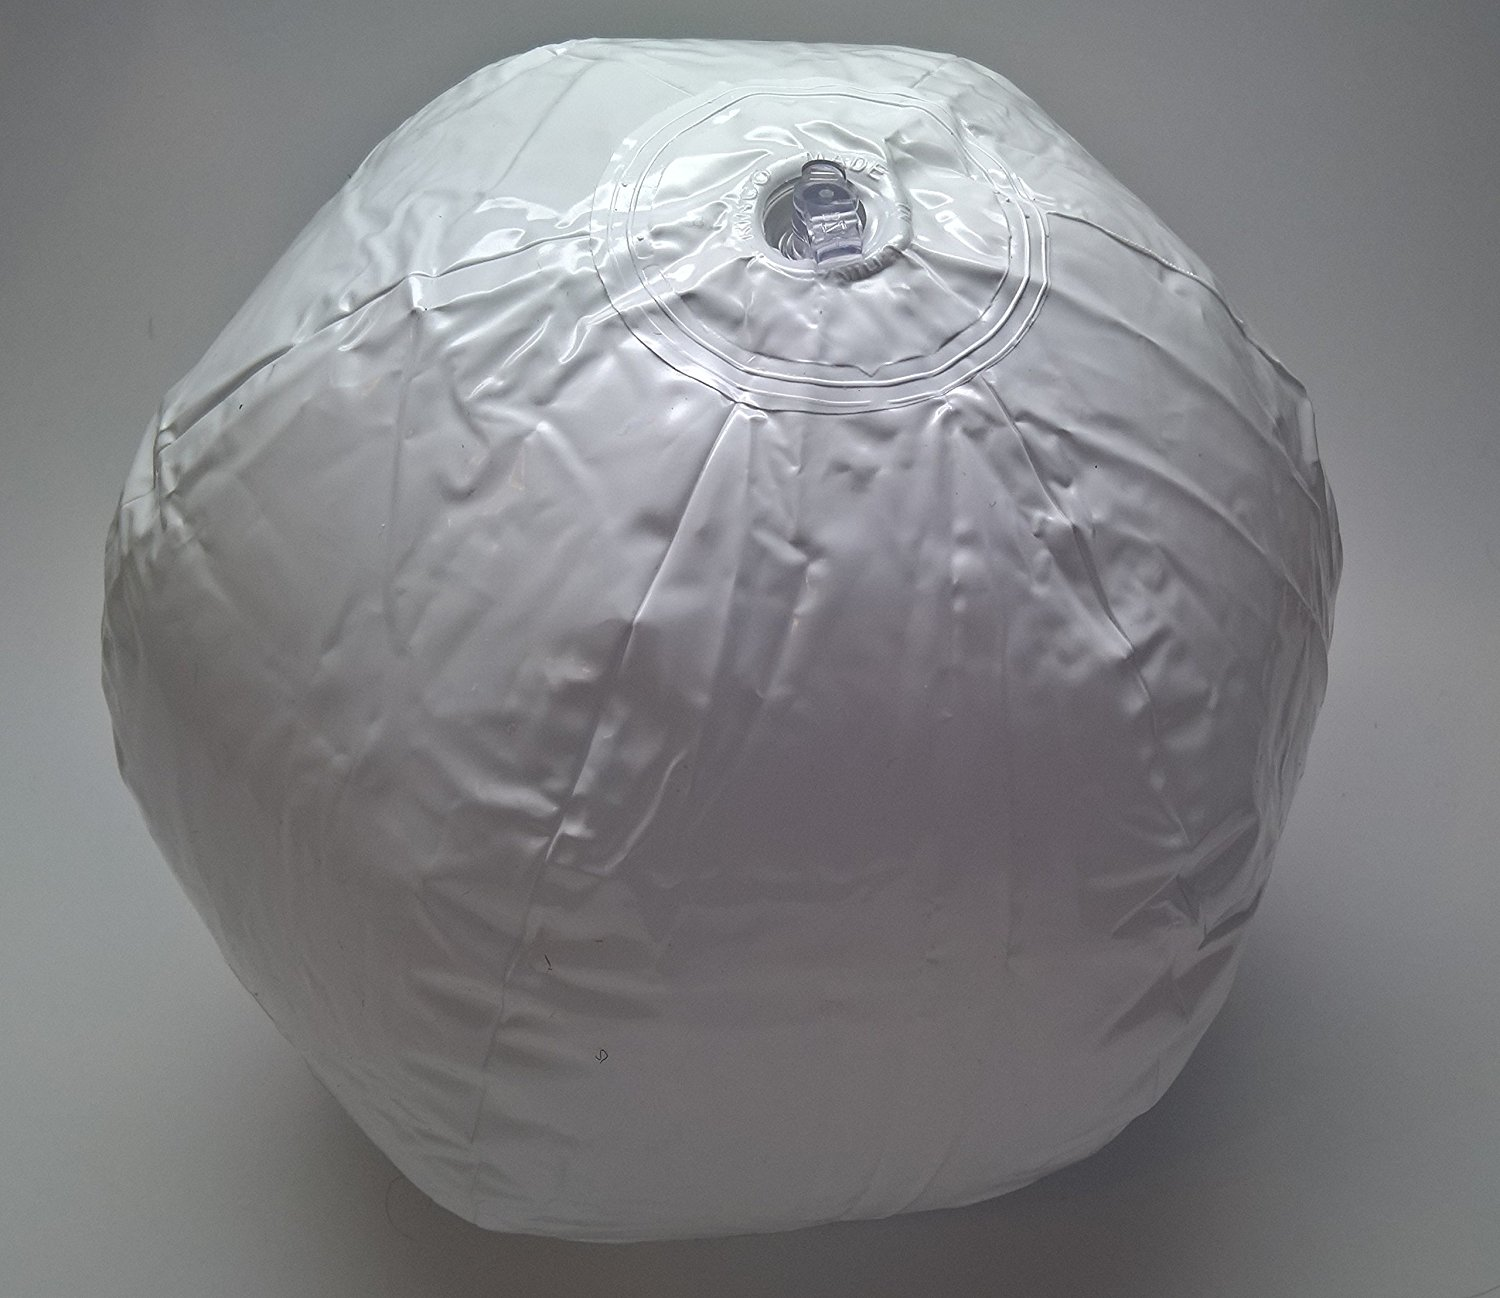 White Beach Ball - Design your Own/Autograph Beach Ball (Package of 12)